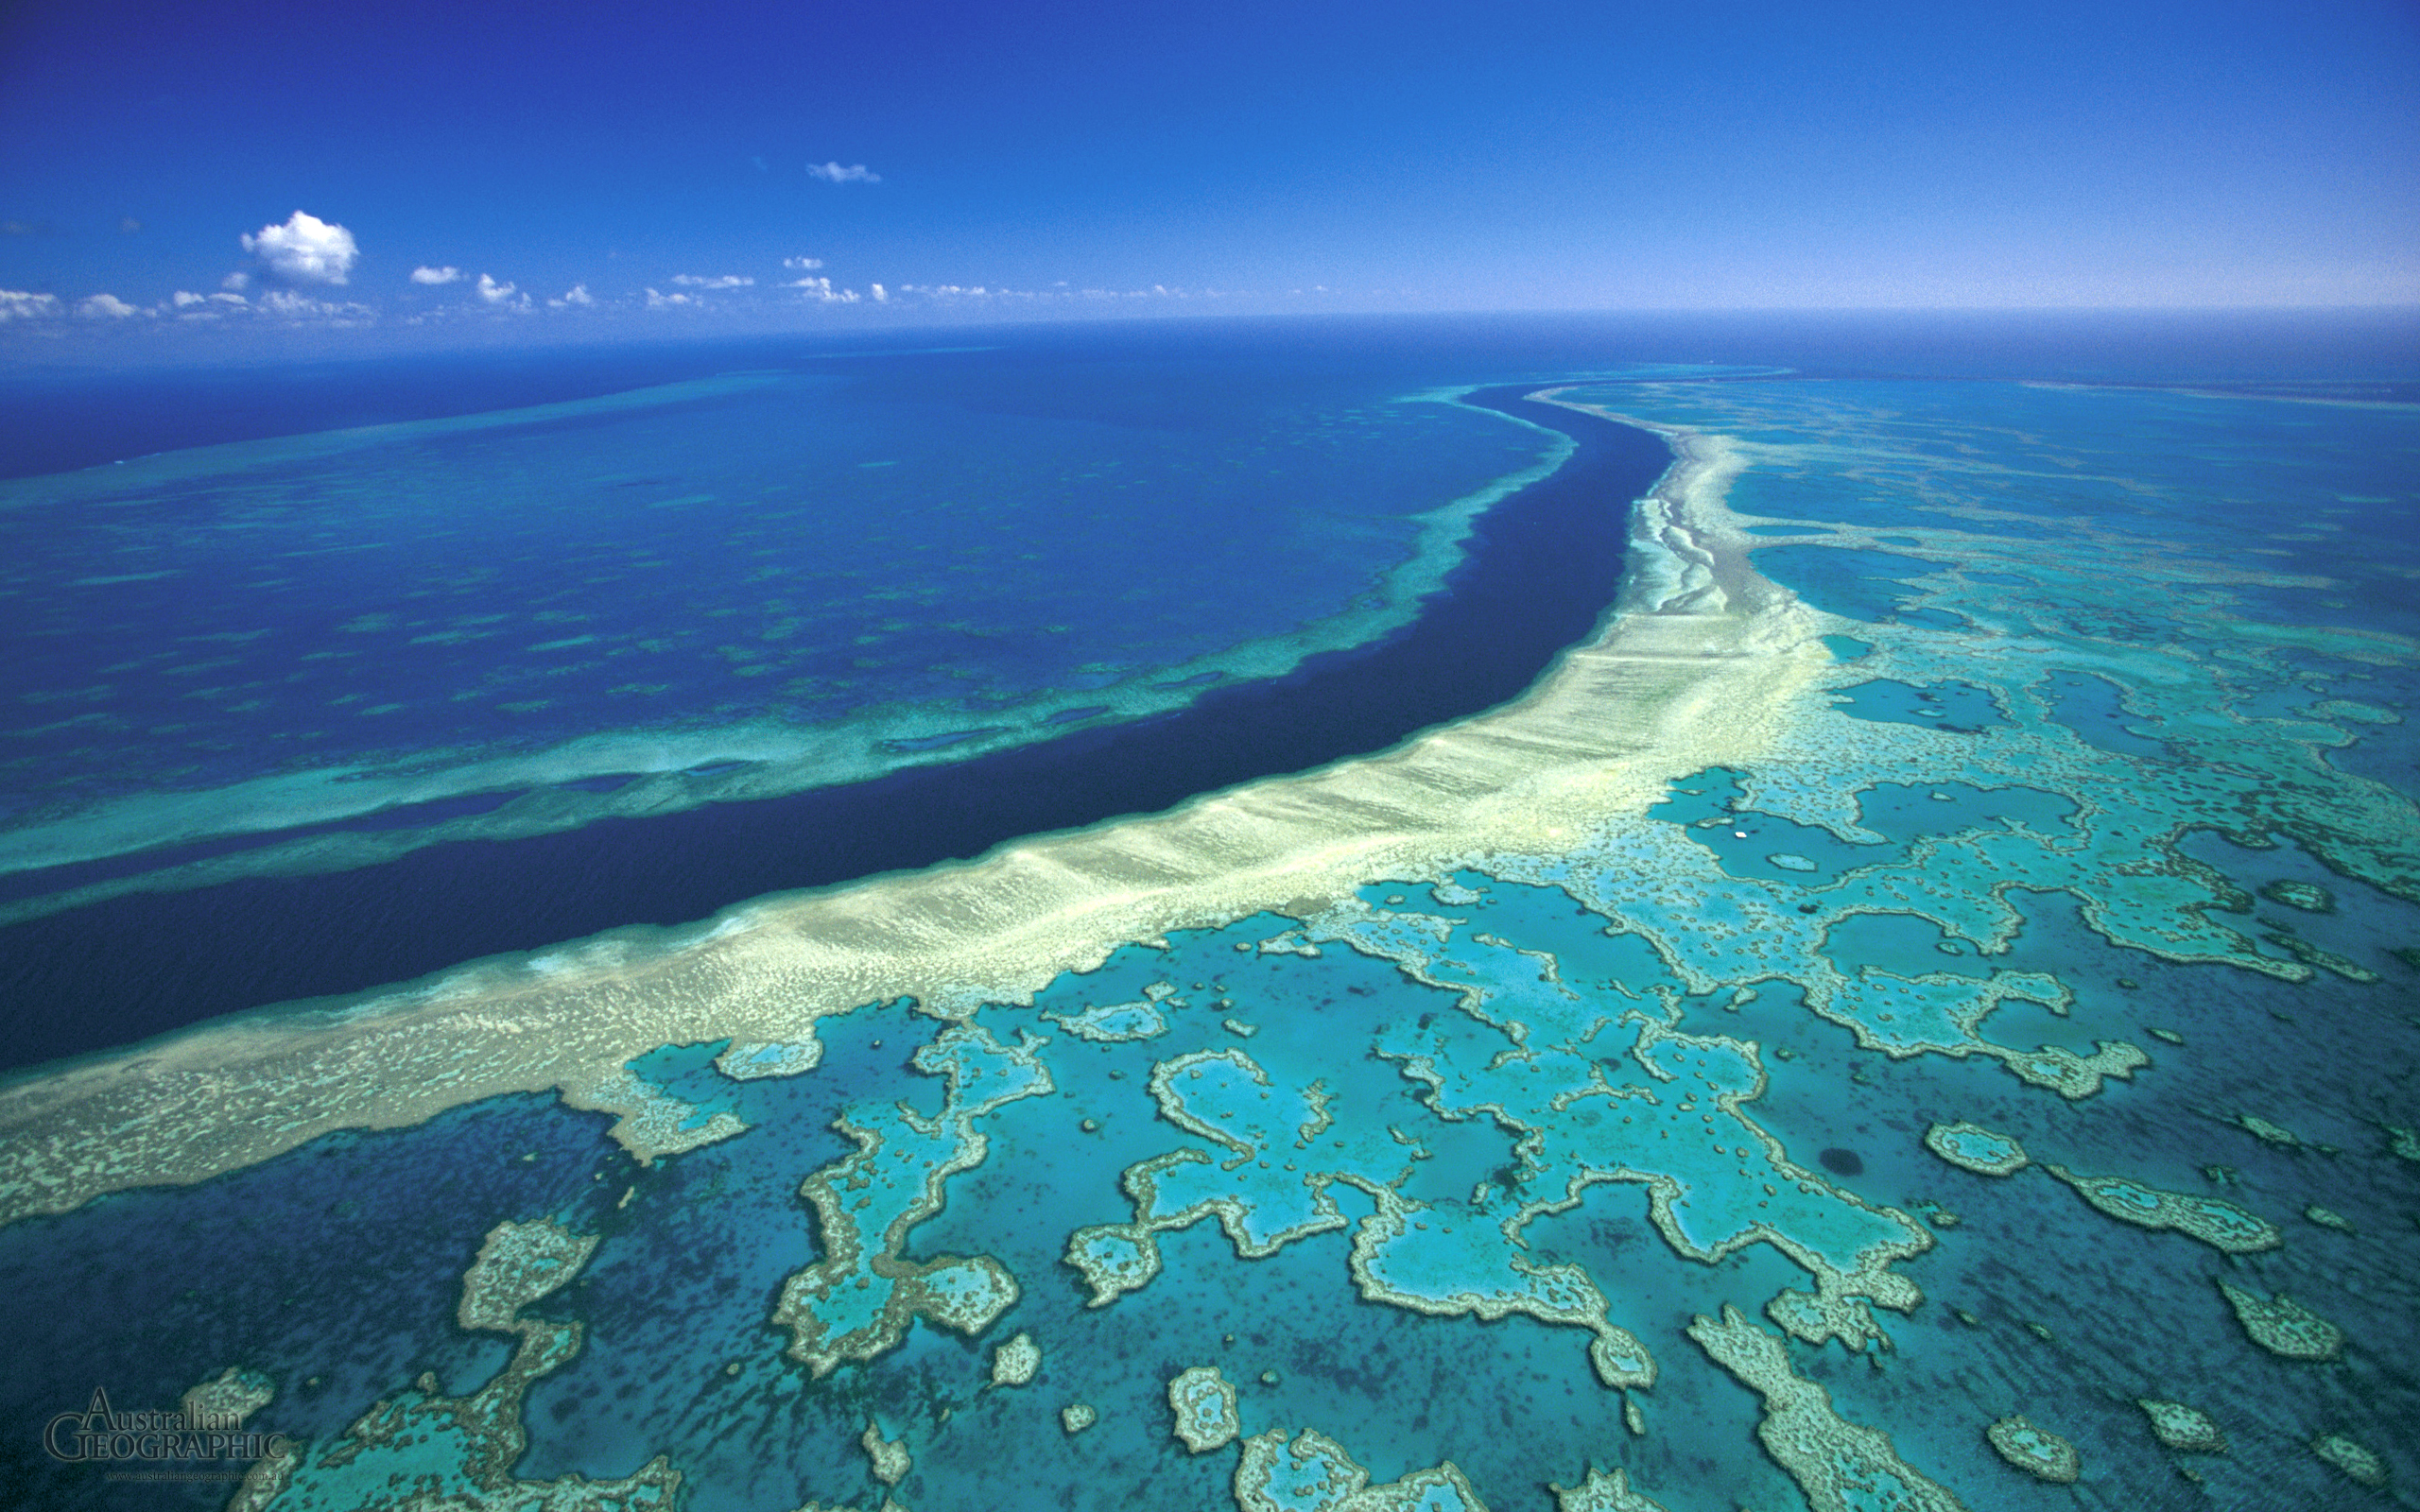 Great-barrier-reef-2011 image credit, mike mccoy.jpg